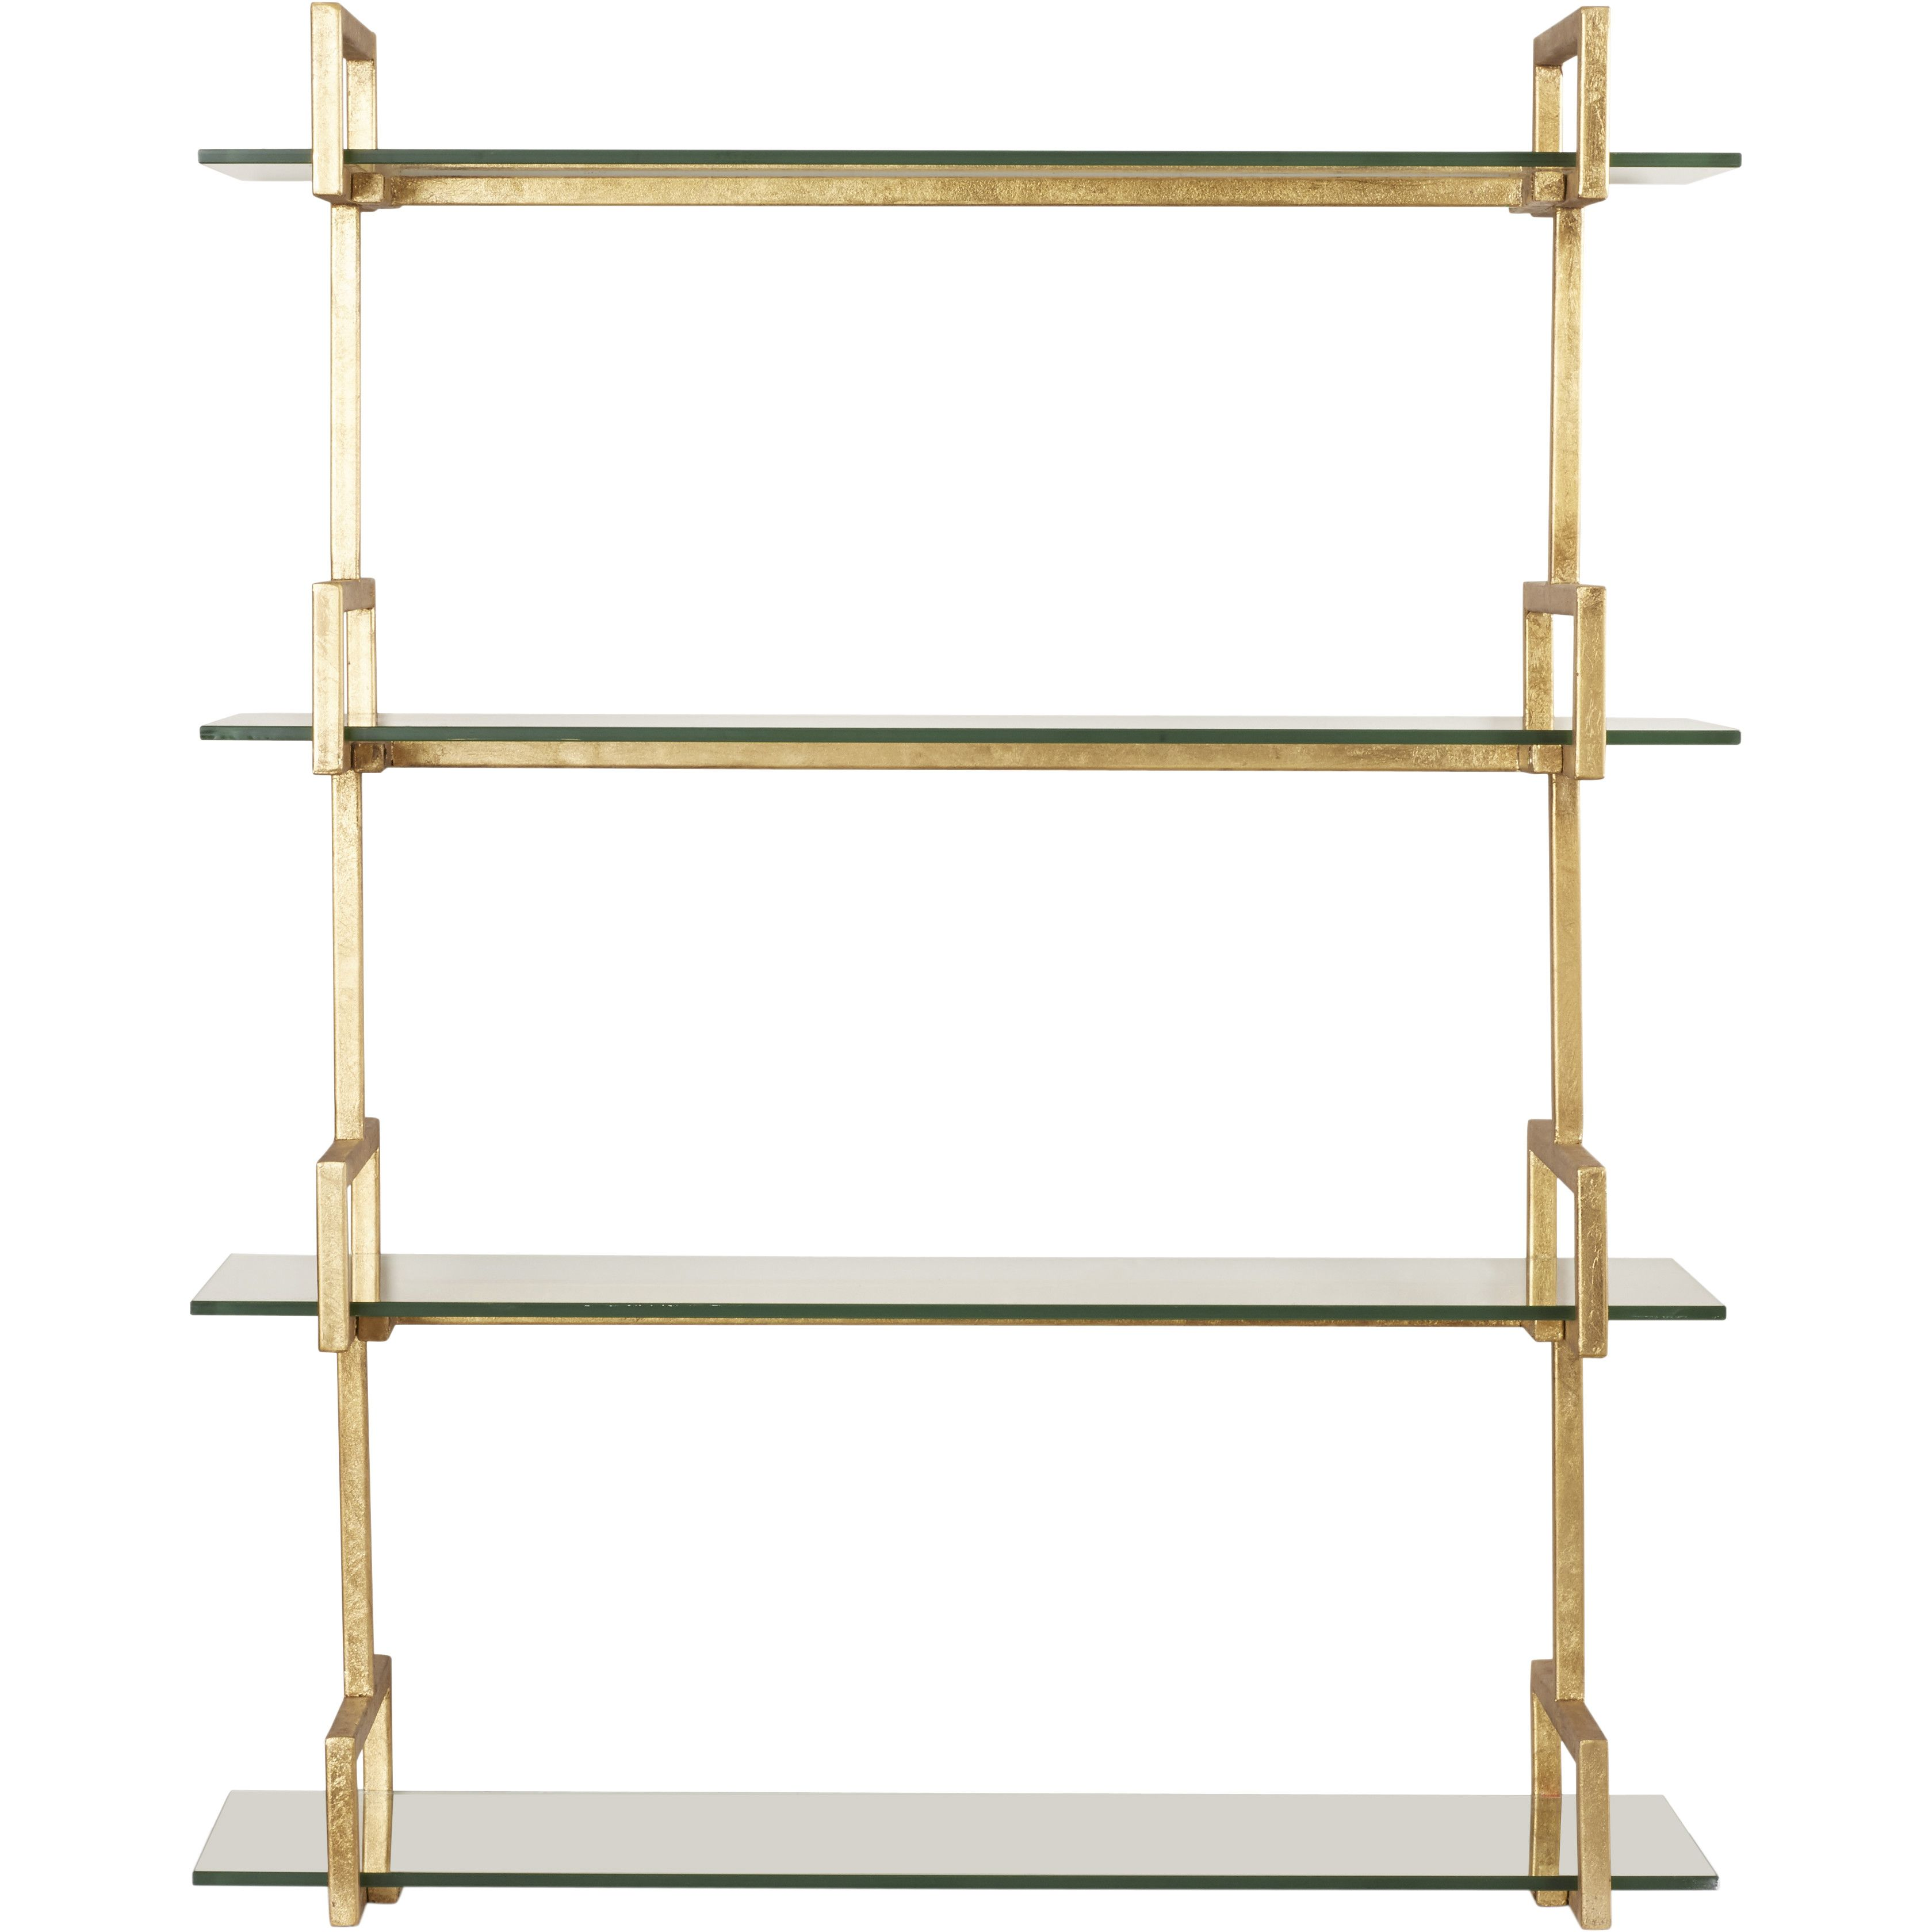 Features Iron Frame Finished In Antiqued Gold Leaf Tempered Glass Shelves With The Advanced Product Engineerin Wall Shelves Glass Wall Shelves Shelves